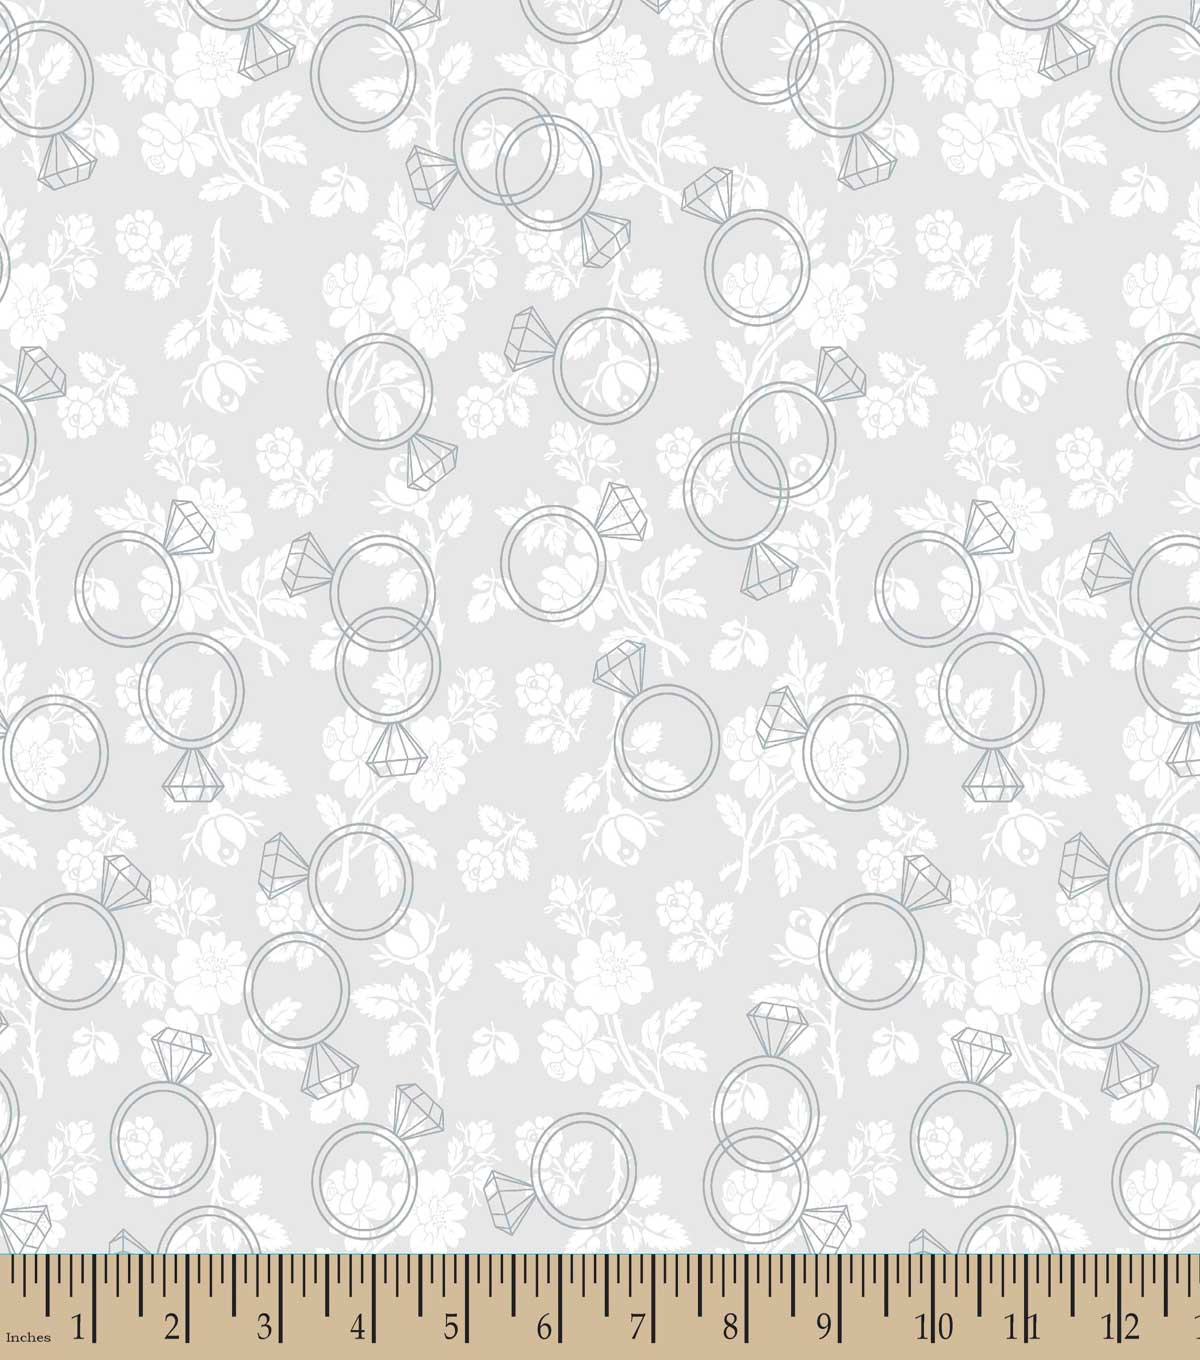 Diamond Wedding Rings Print Fabric